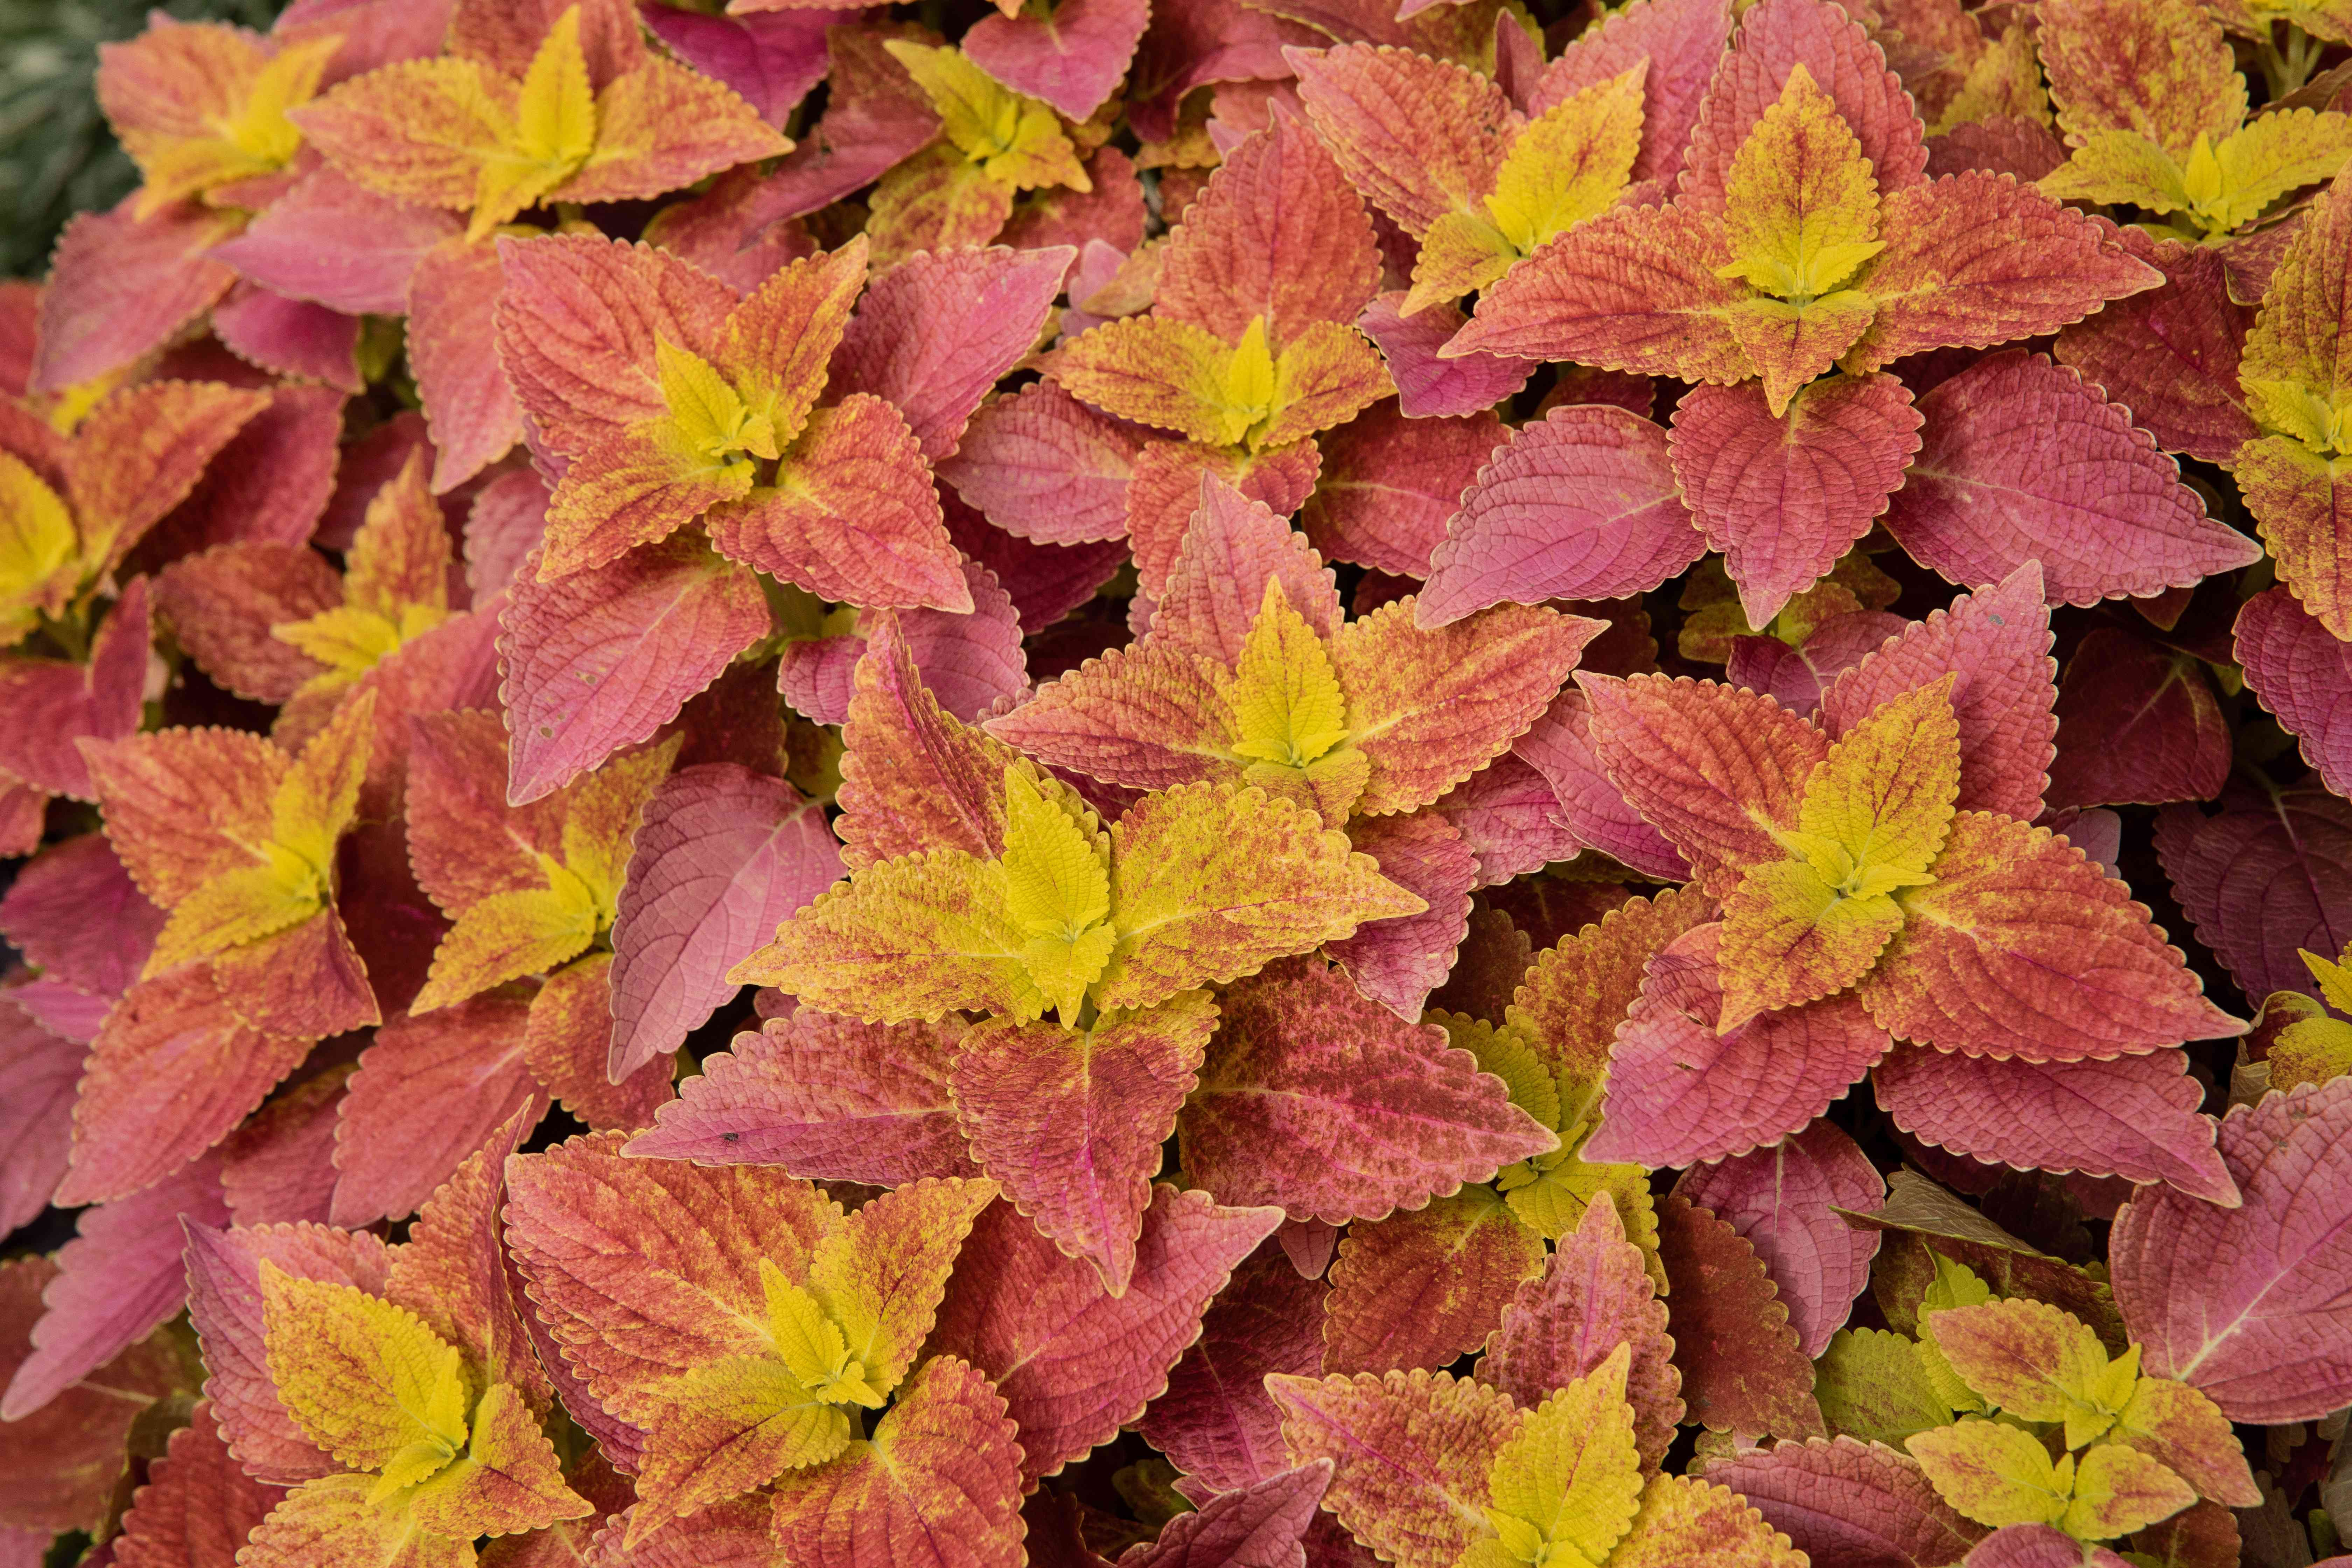 Coleus plant with red and yellow mixed leaves clustered together